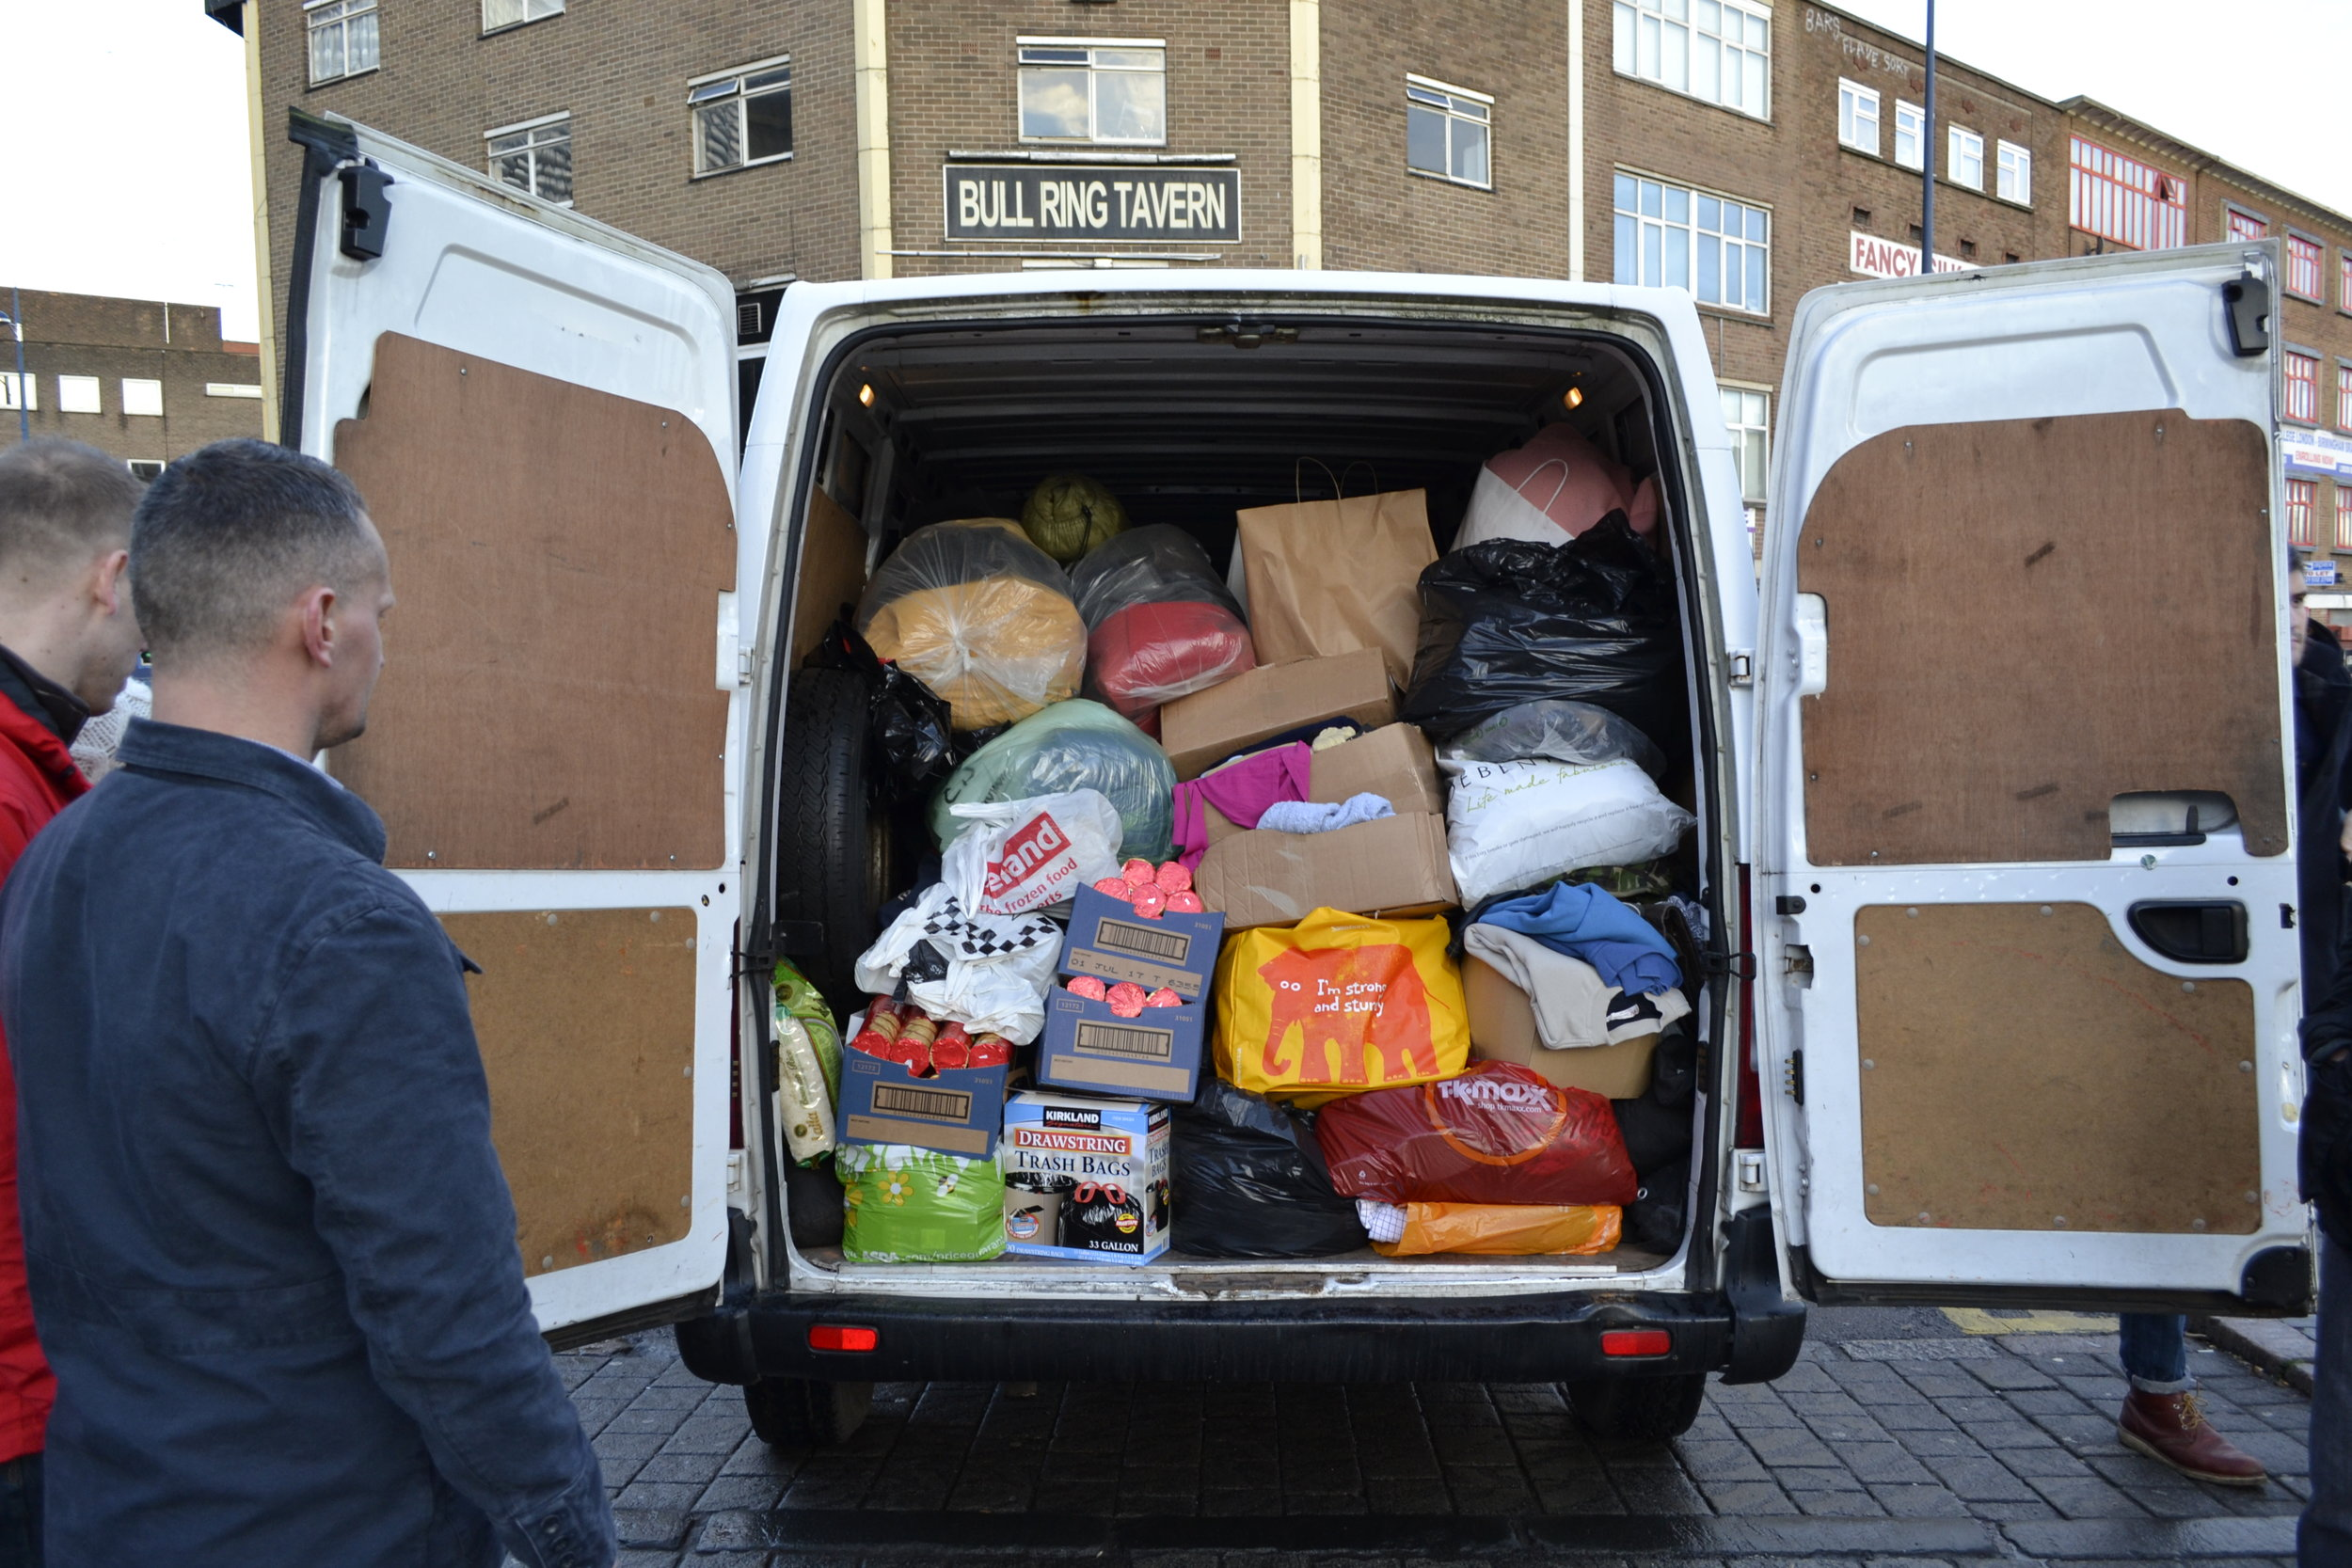 a fully laden van filled to the brim with items donated to the homeless from across the warwickshire province